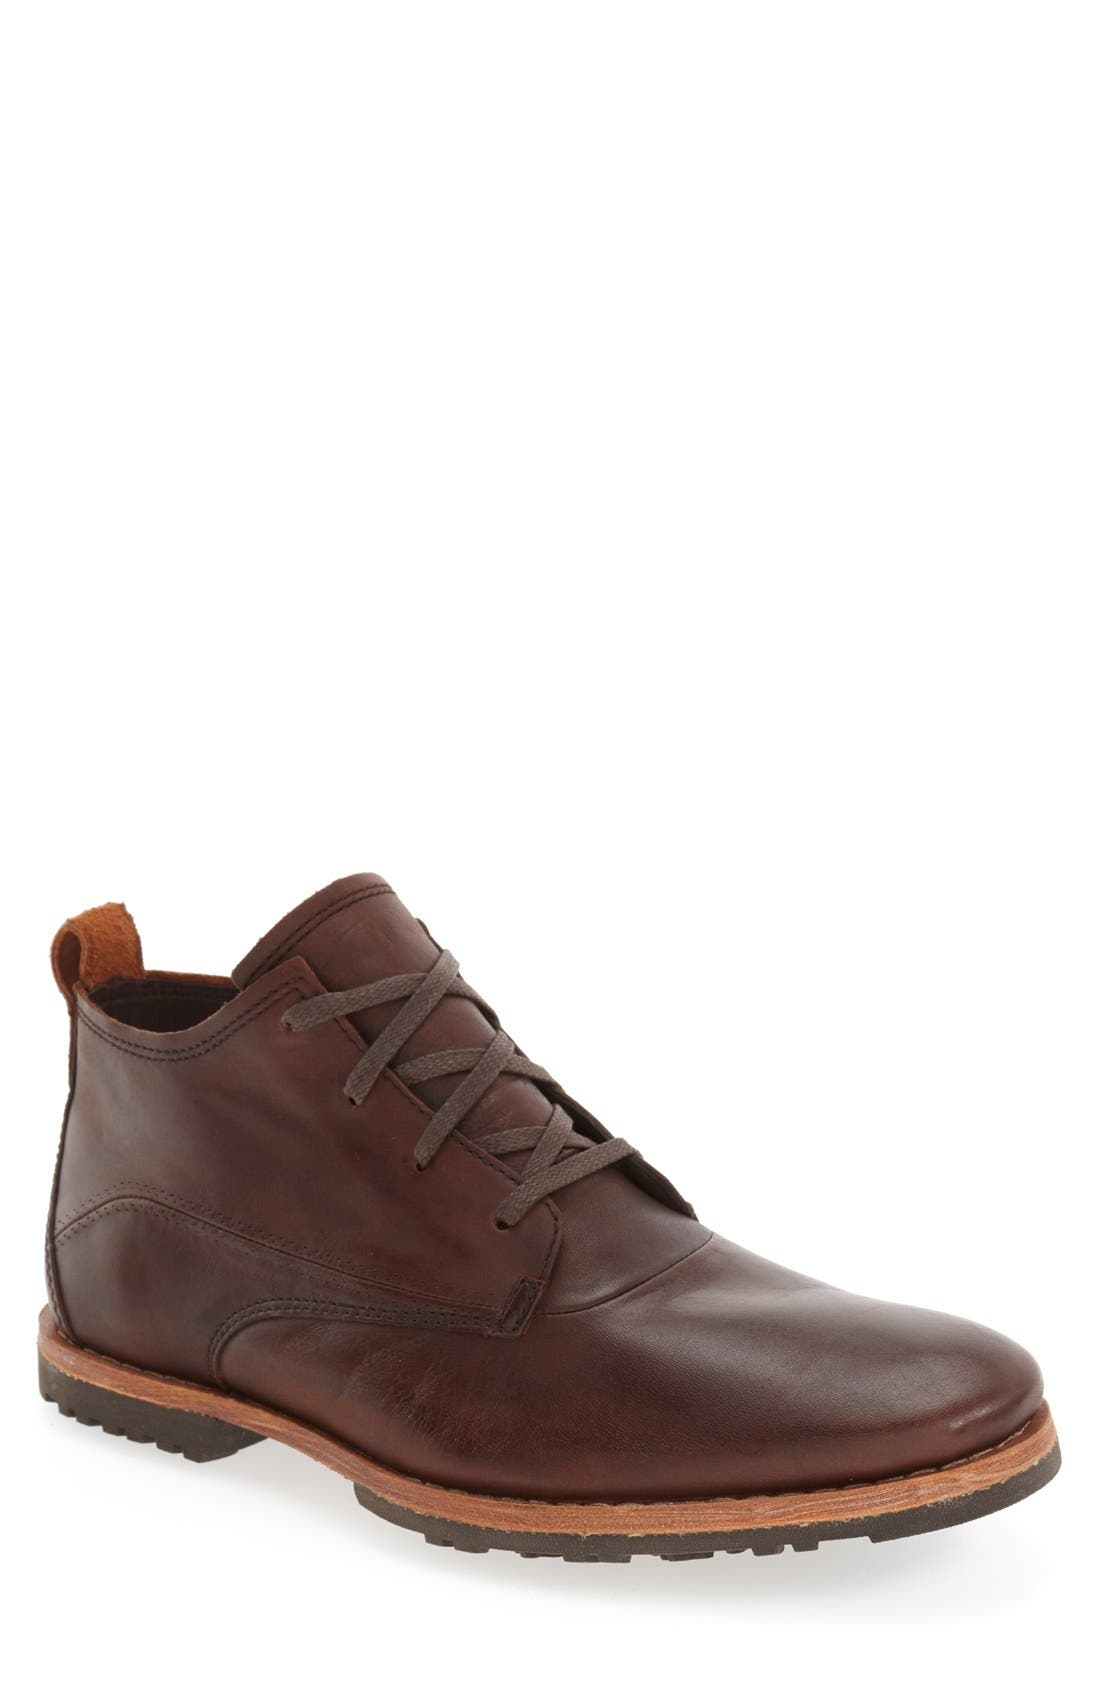 'Bardstown' Chukka Boot,                             Main thumbnail 1, color,                             Puce